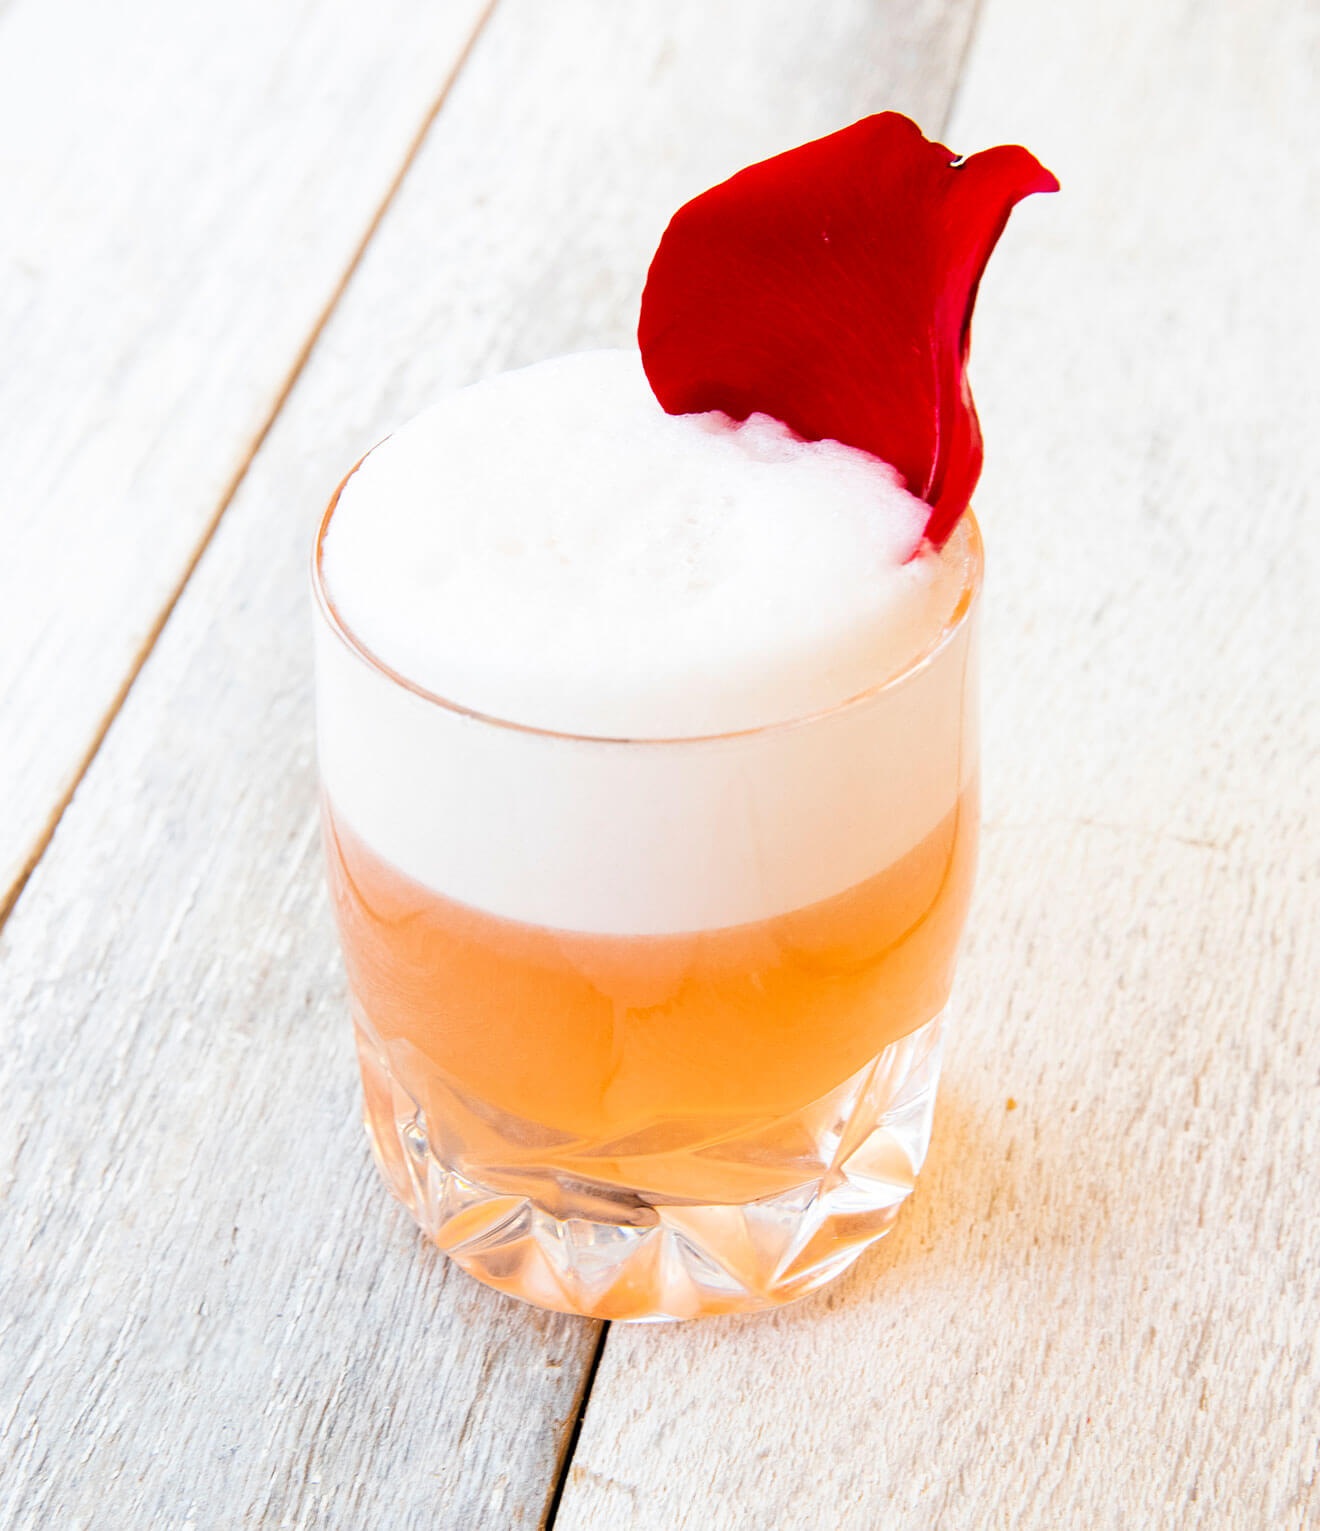 Cupid's CBD Fizz with flower garnish